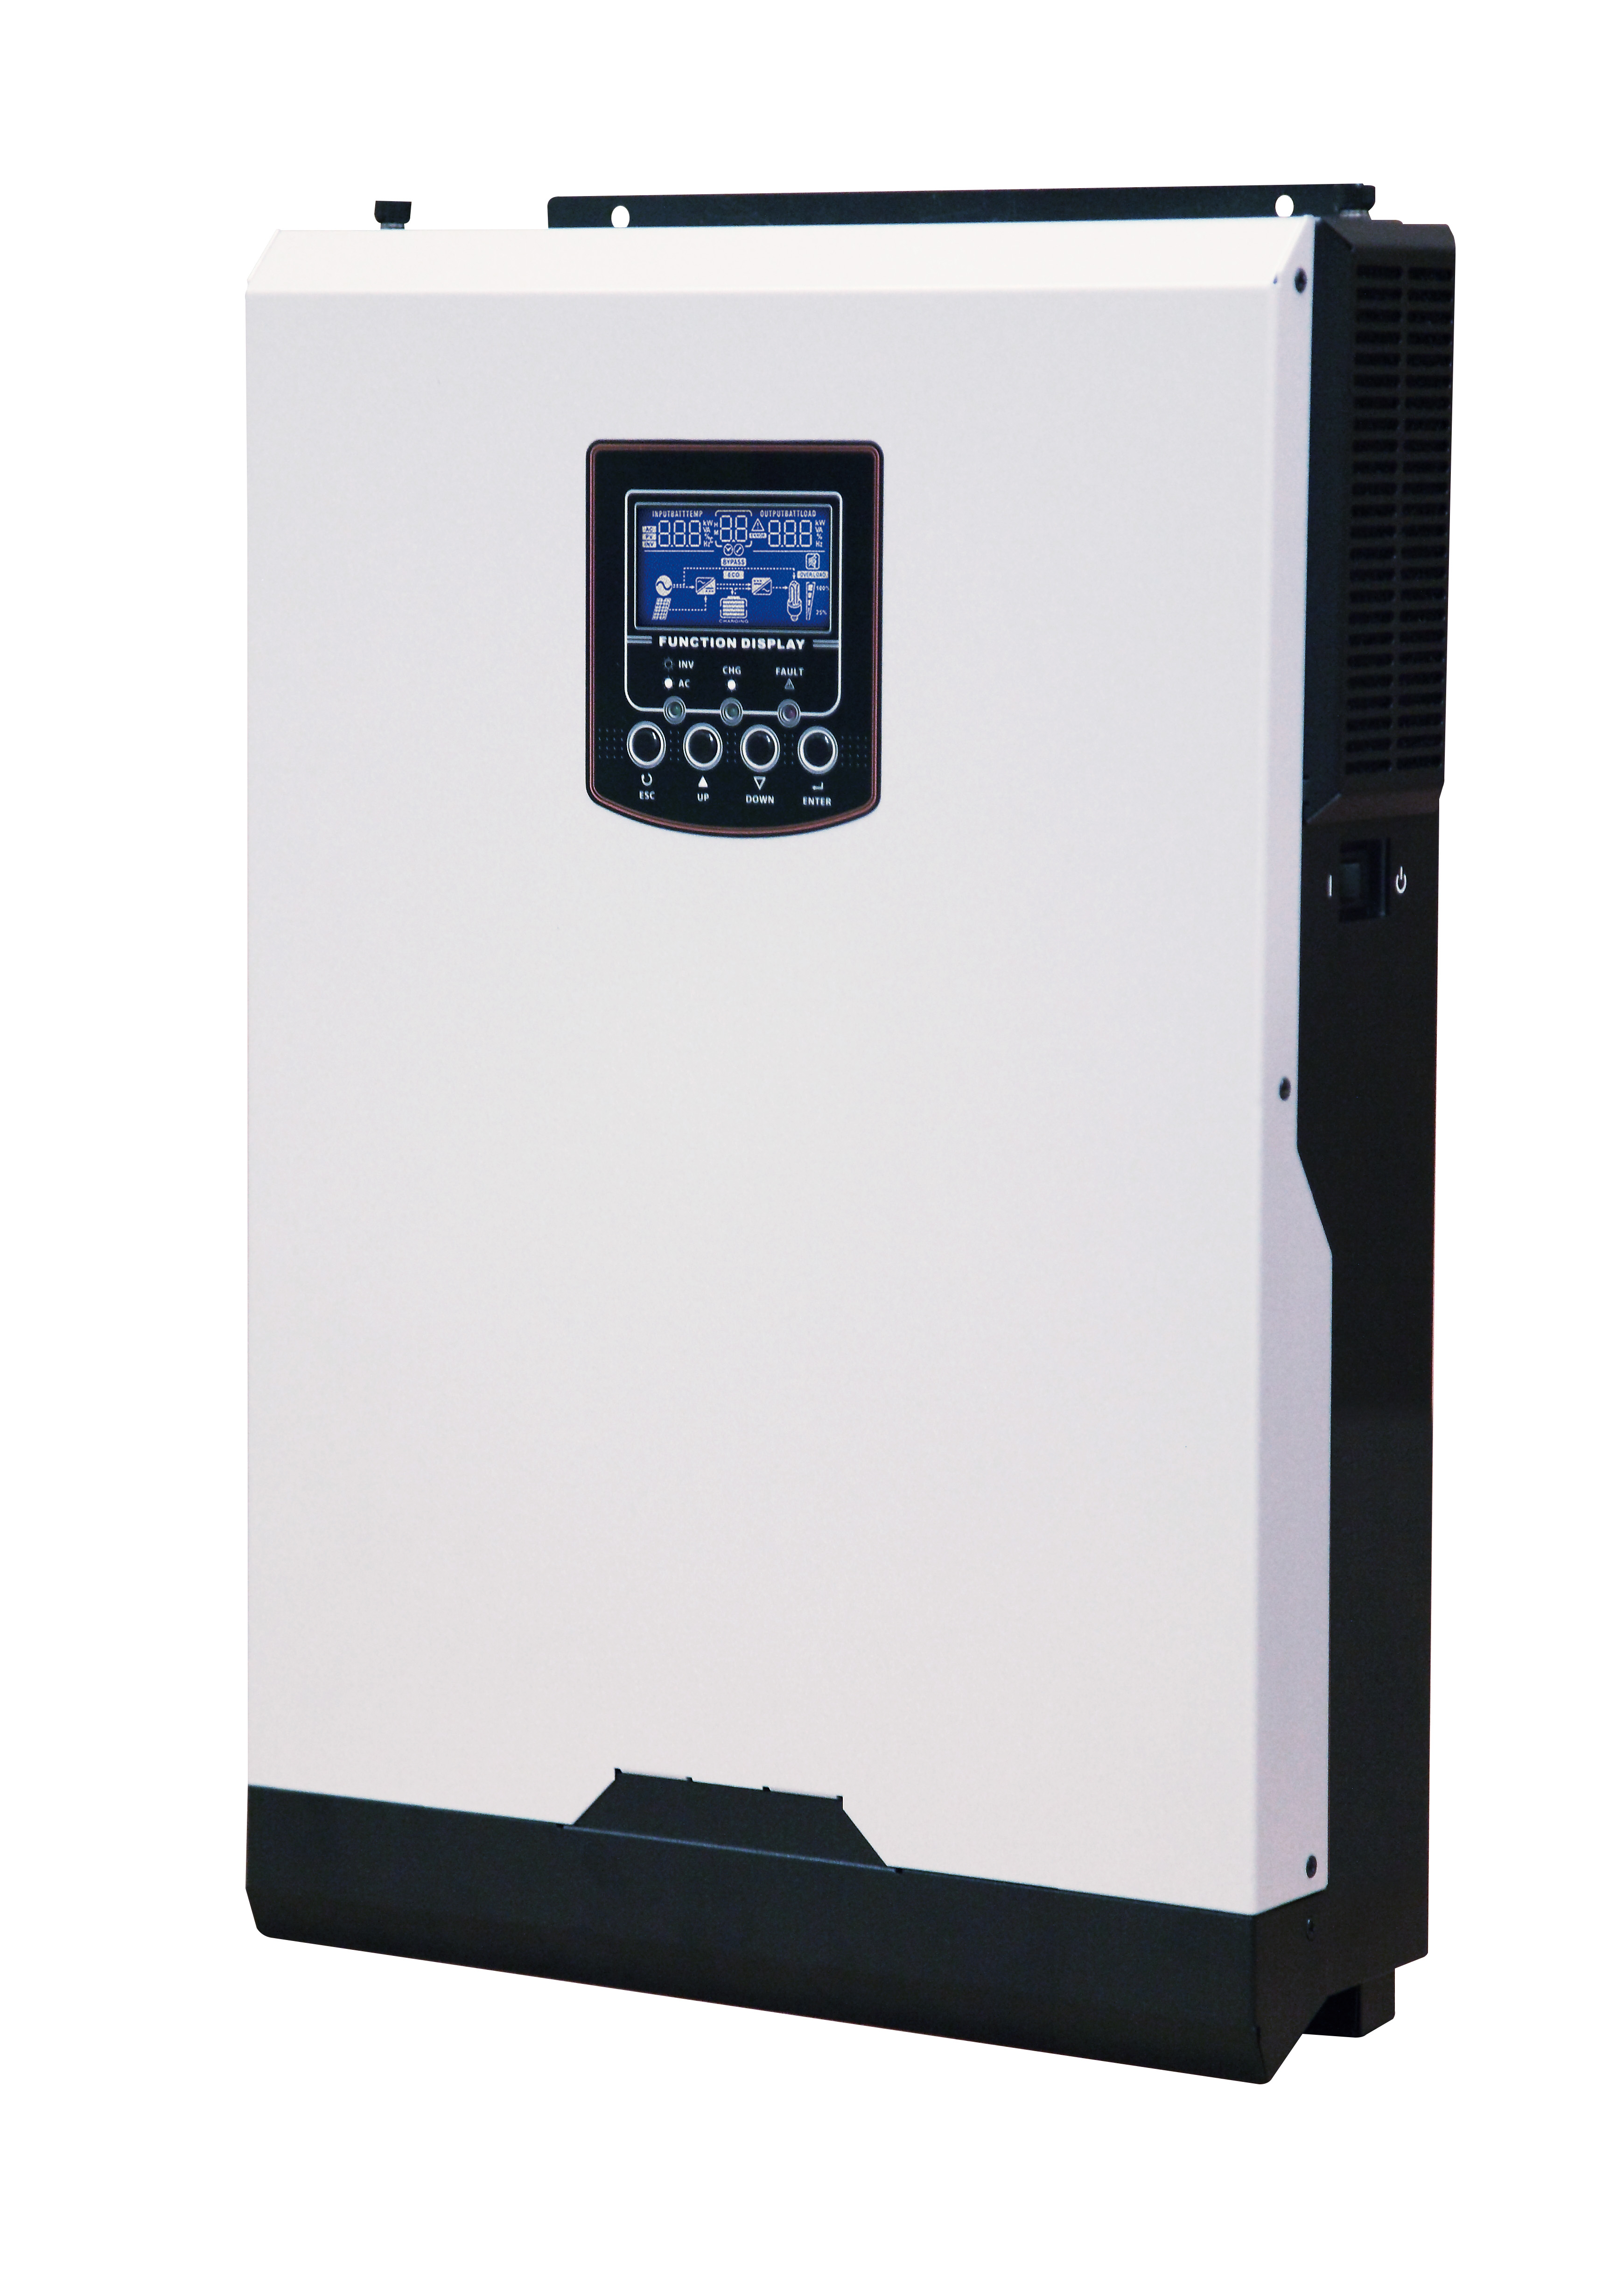 5kw 48v Iconica Hybrid Inverter 500v Mppt Solar 80a Charger No Battery Circuit Besides Charge Controller The 5000w Intelligently Combines Functions Of A Pure Sine Wave And 60a